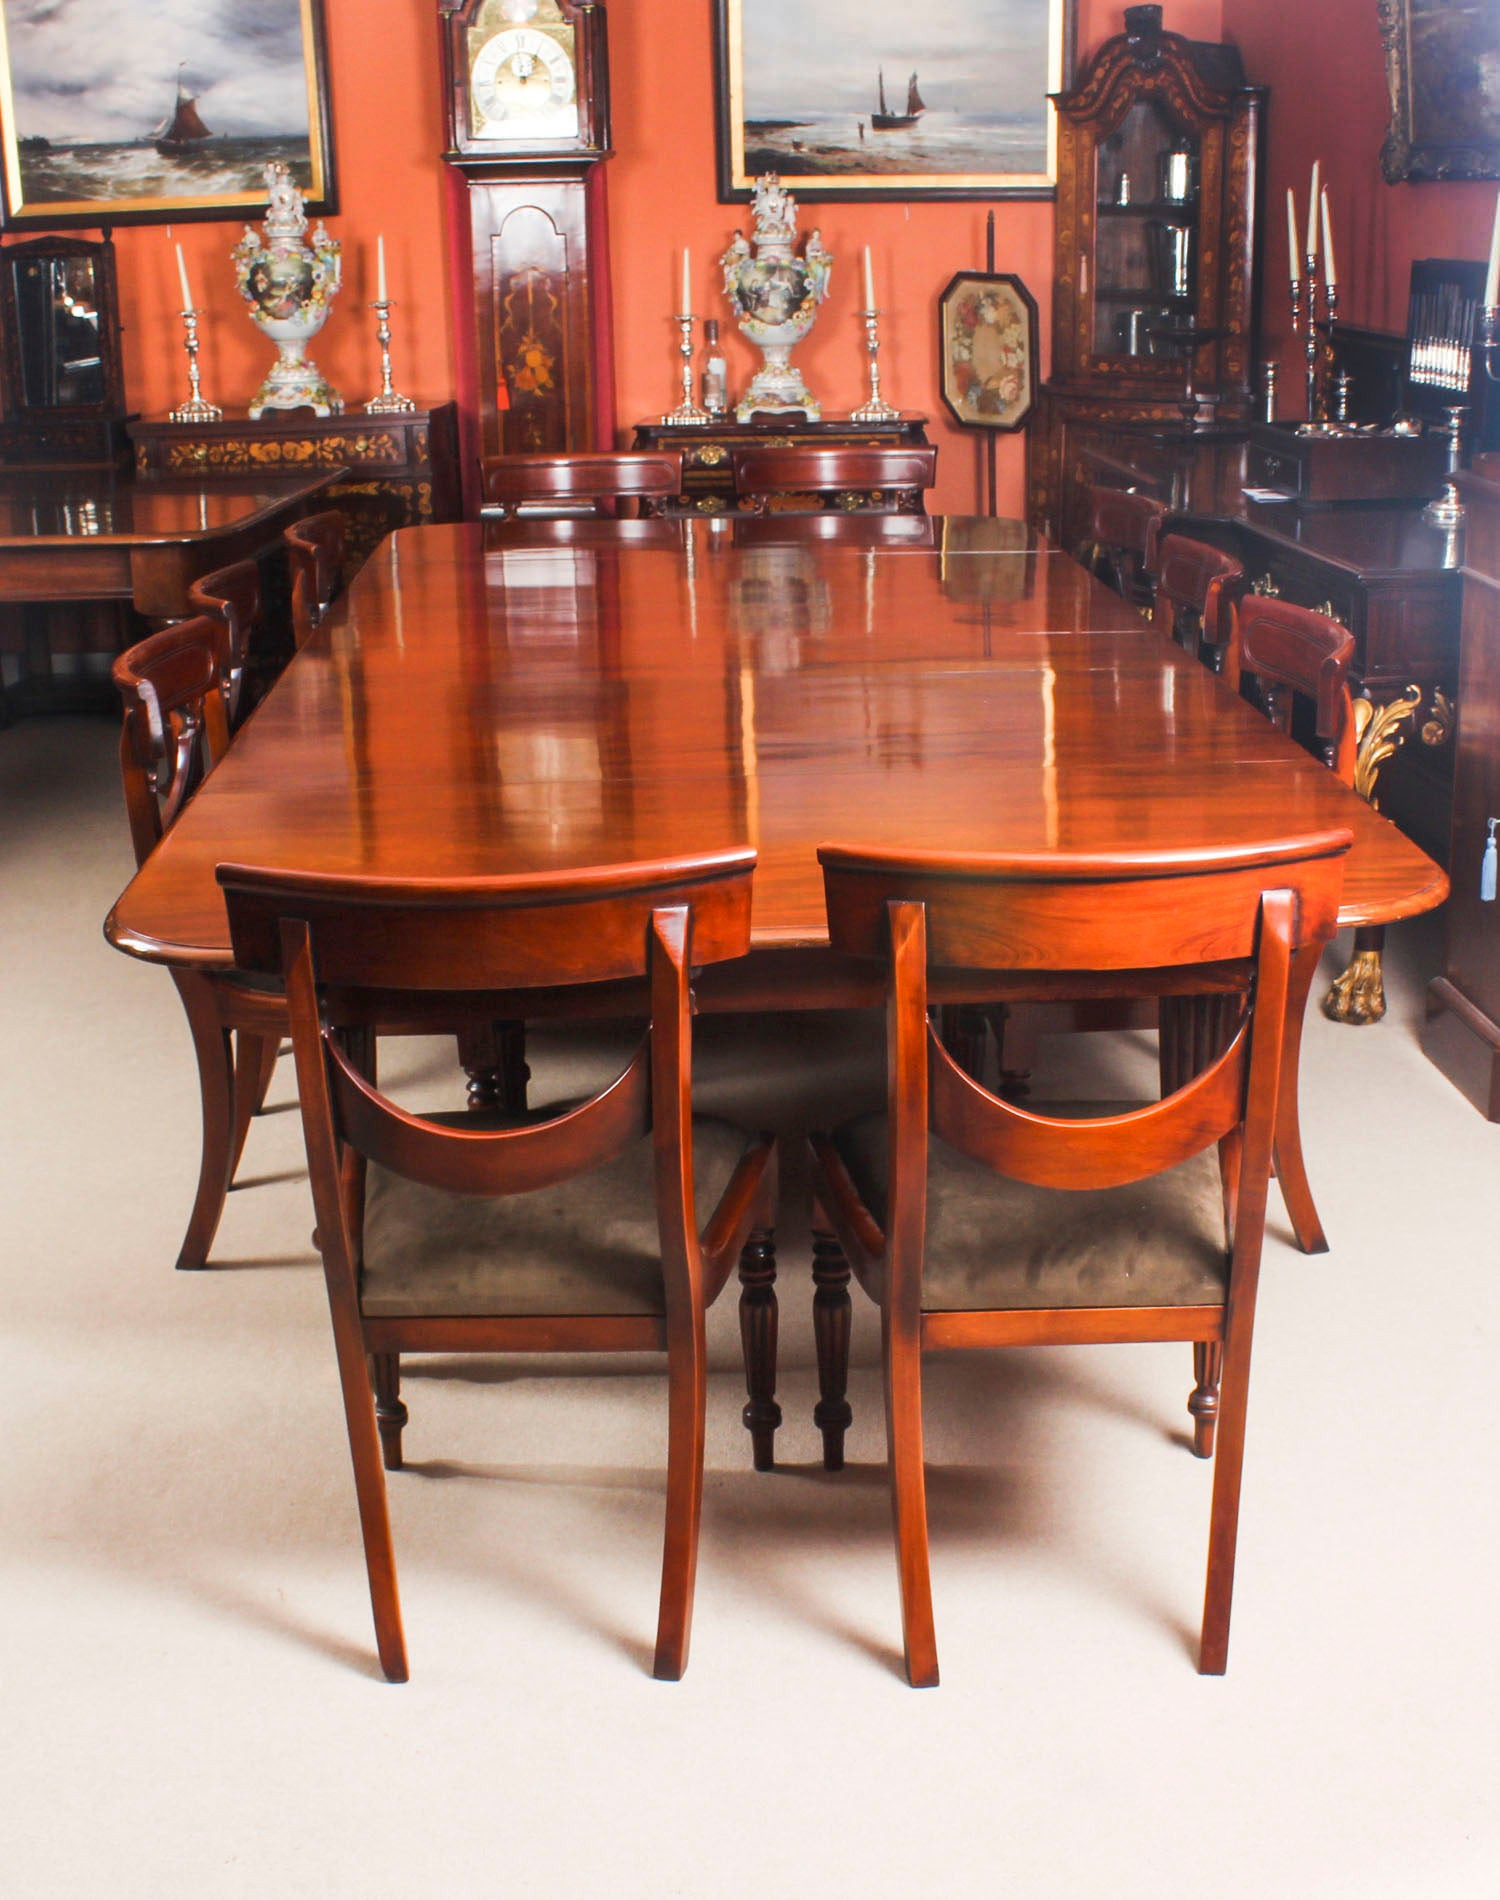 a Antique 11 ft Flame Mahogany Extending Dining Table C1840 and 10 chairs 2 org